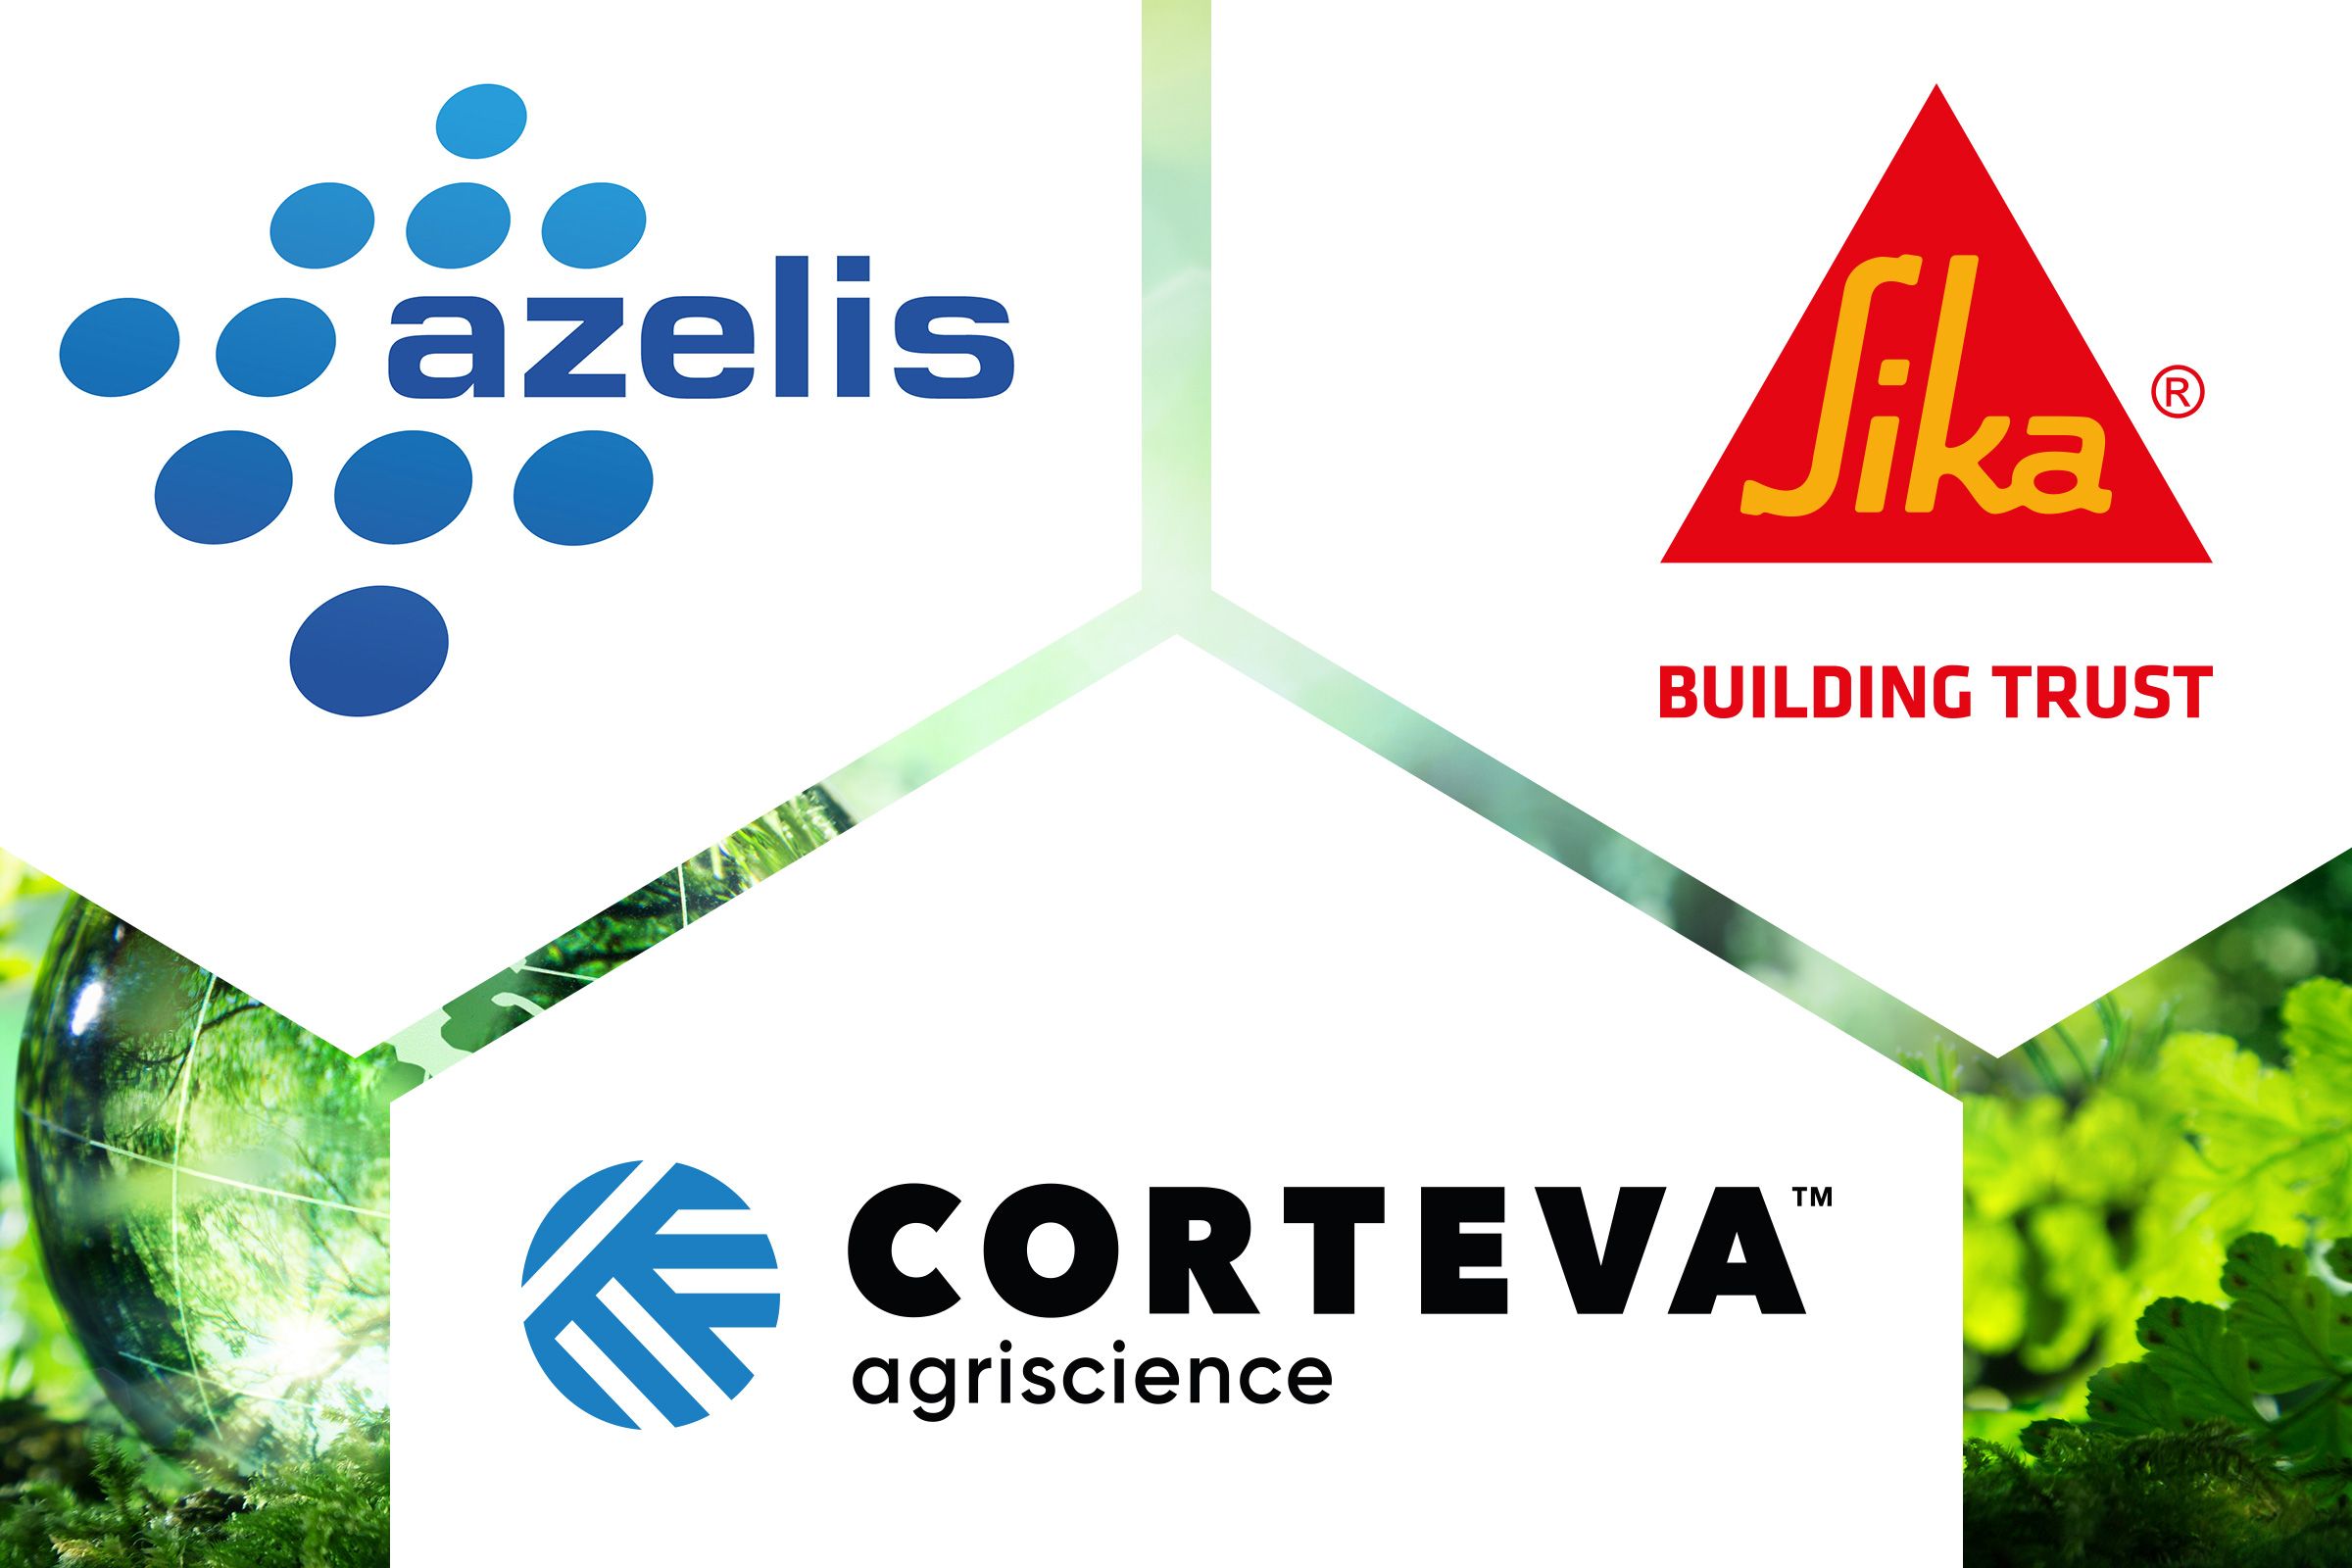 Azelis AG, Corteva Agriscience And SIKA AG Join The TfS Initiative